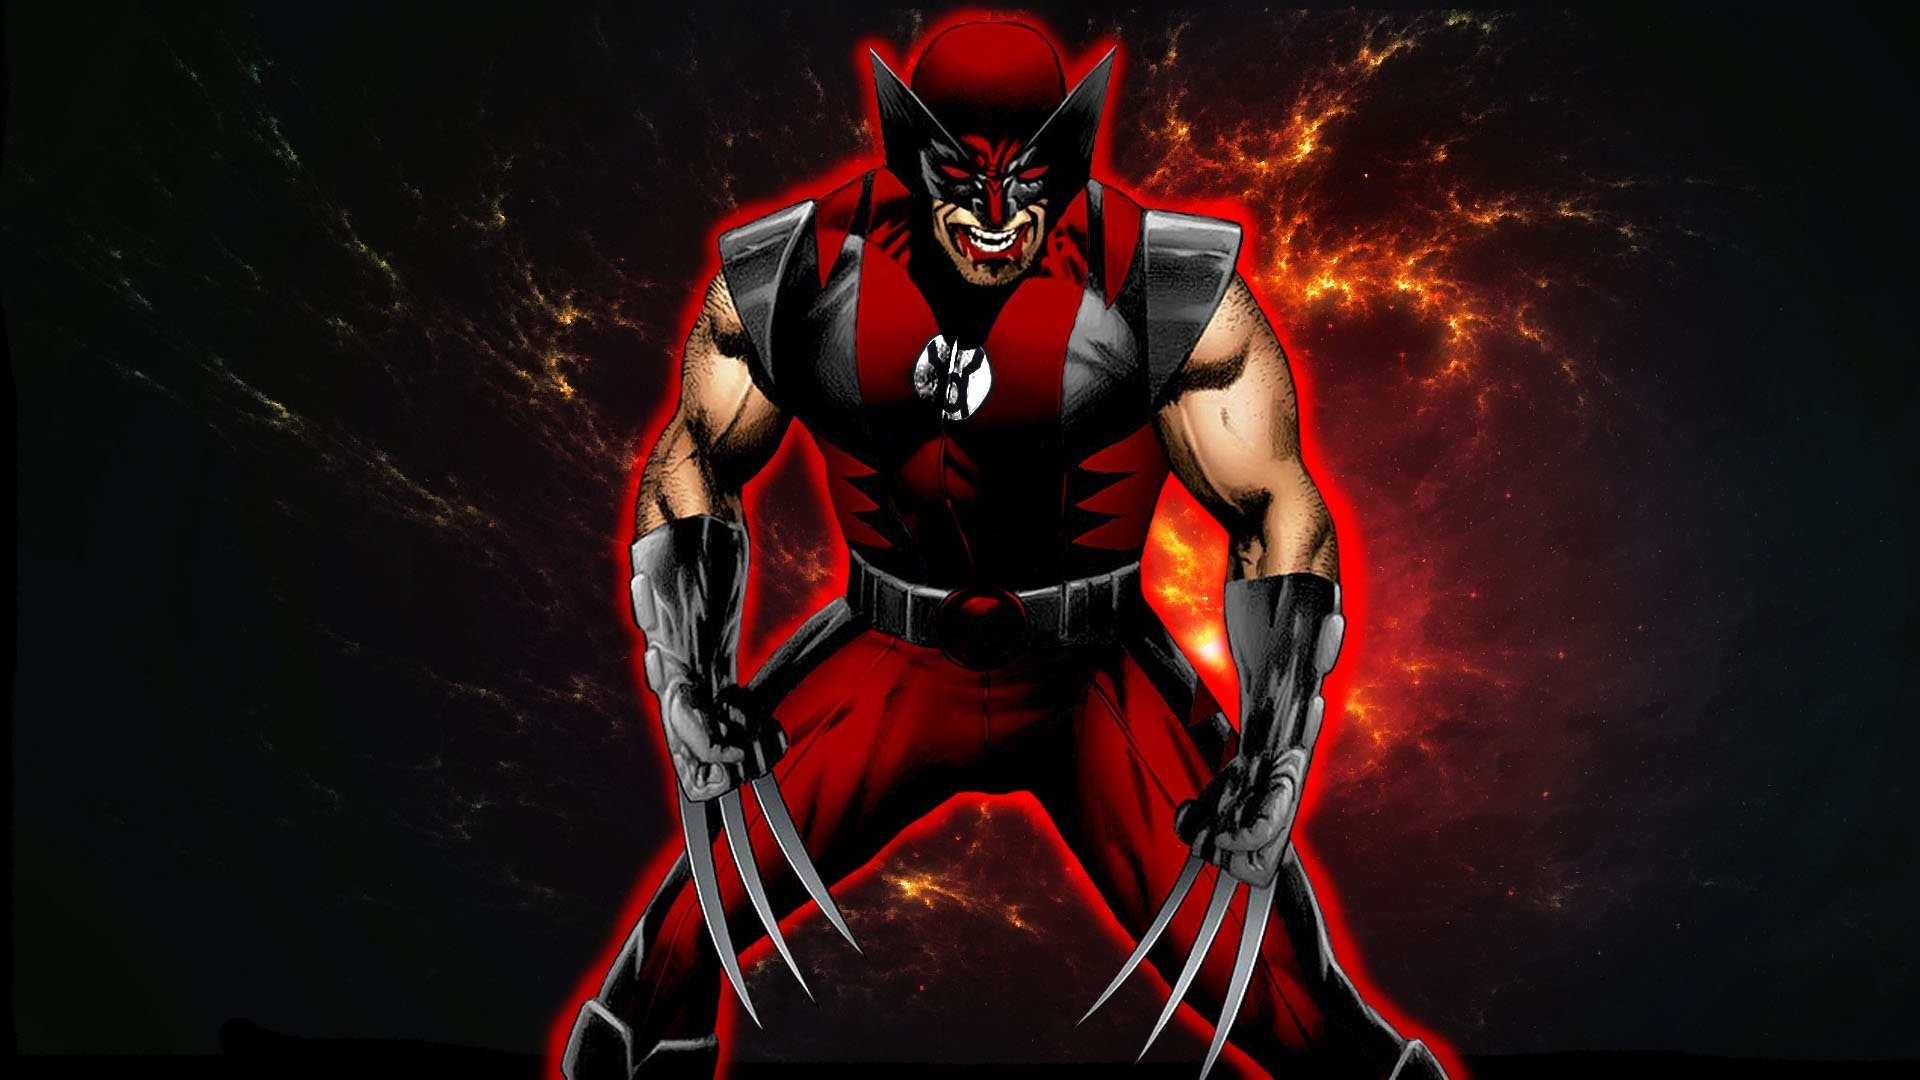 1920x1080 Wolverine Wallpapers p Epic Wallpaperz 1920×1080 Wolverine Pics Wallpapers  (53 Wallpapers) |